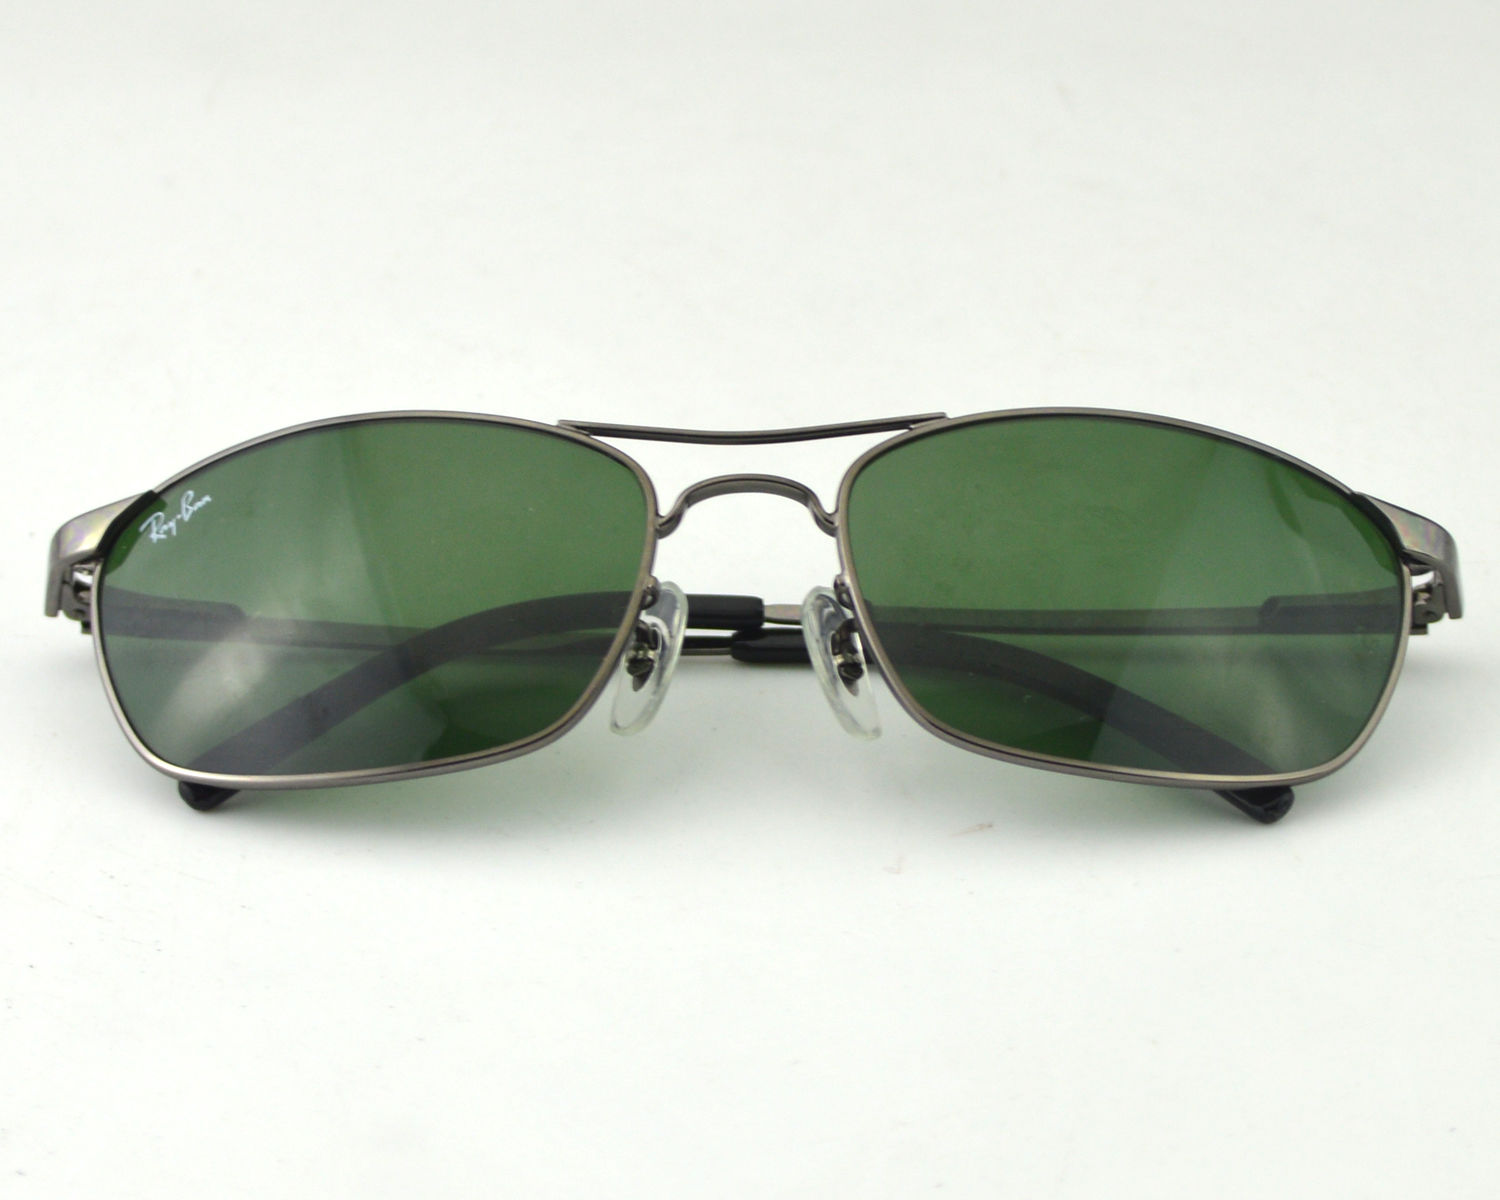 79c6ece9b1 Ray-Ban RB3132 004 Gunmetal Frame Green Lens Male Sunglasses 56mm